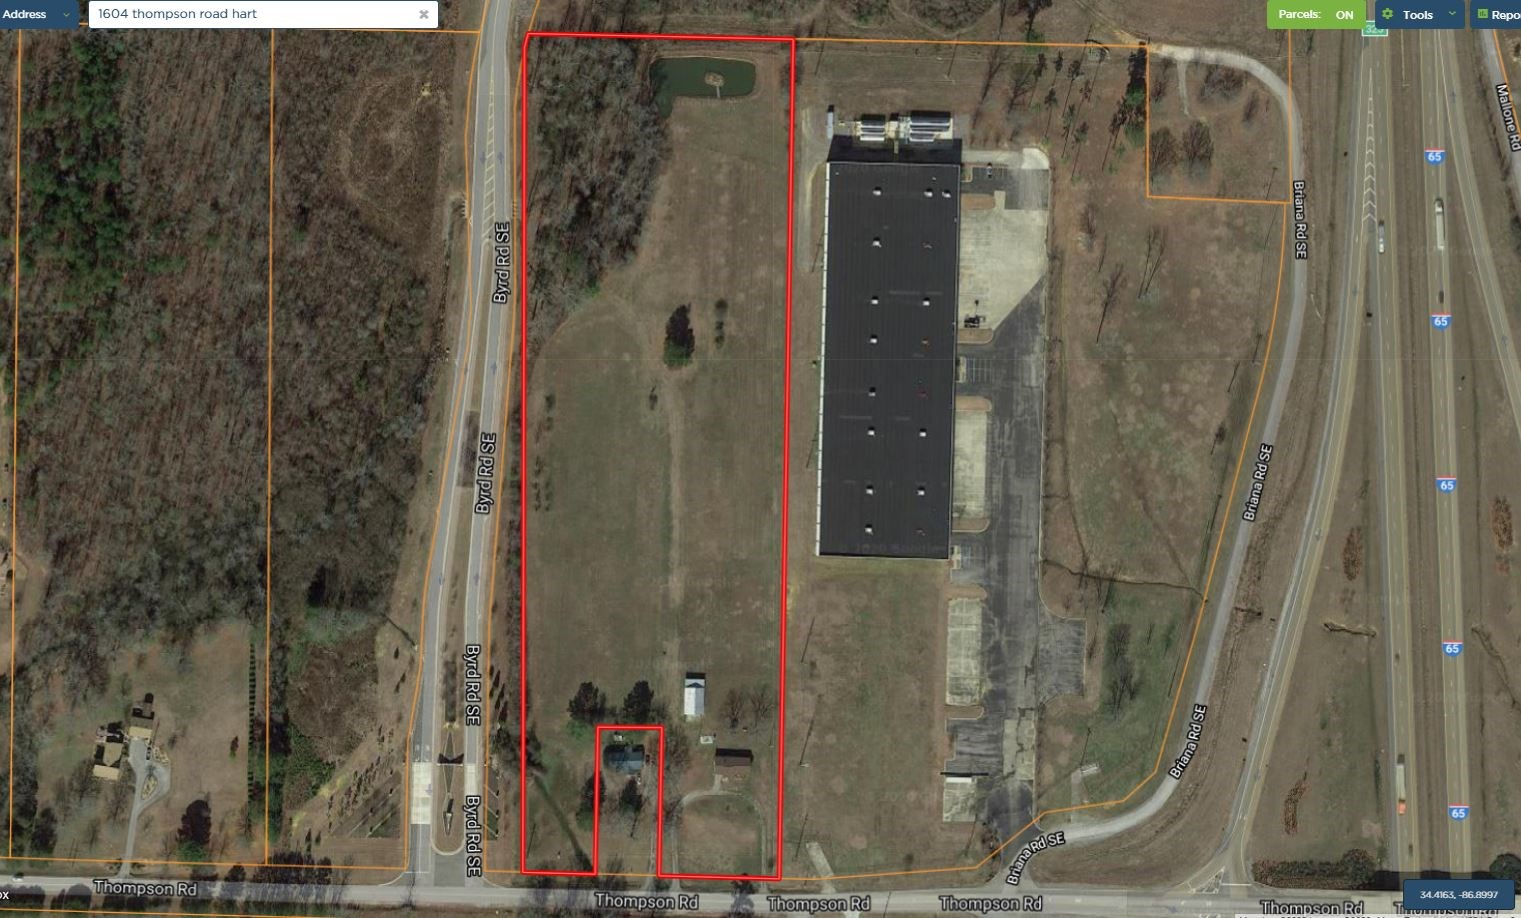 Commercial property for sale Hartselle Morgan County Alabama